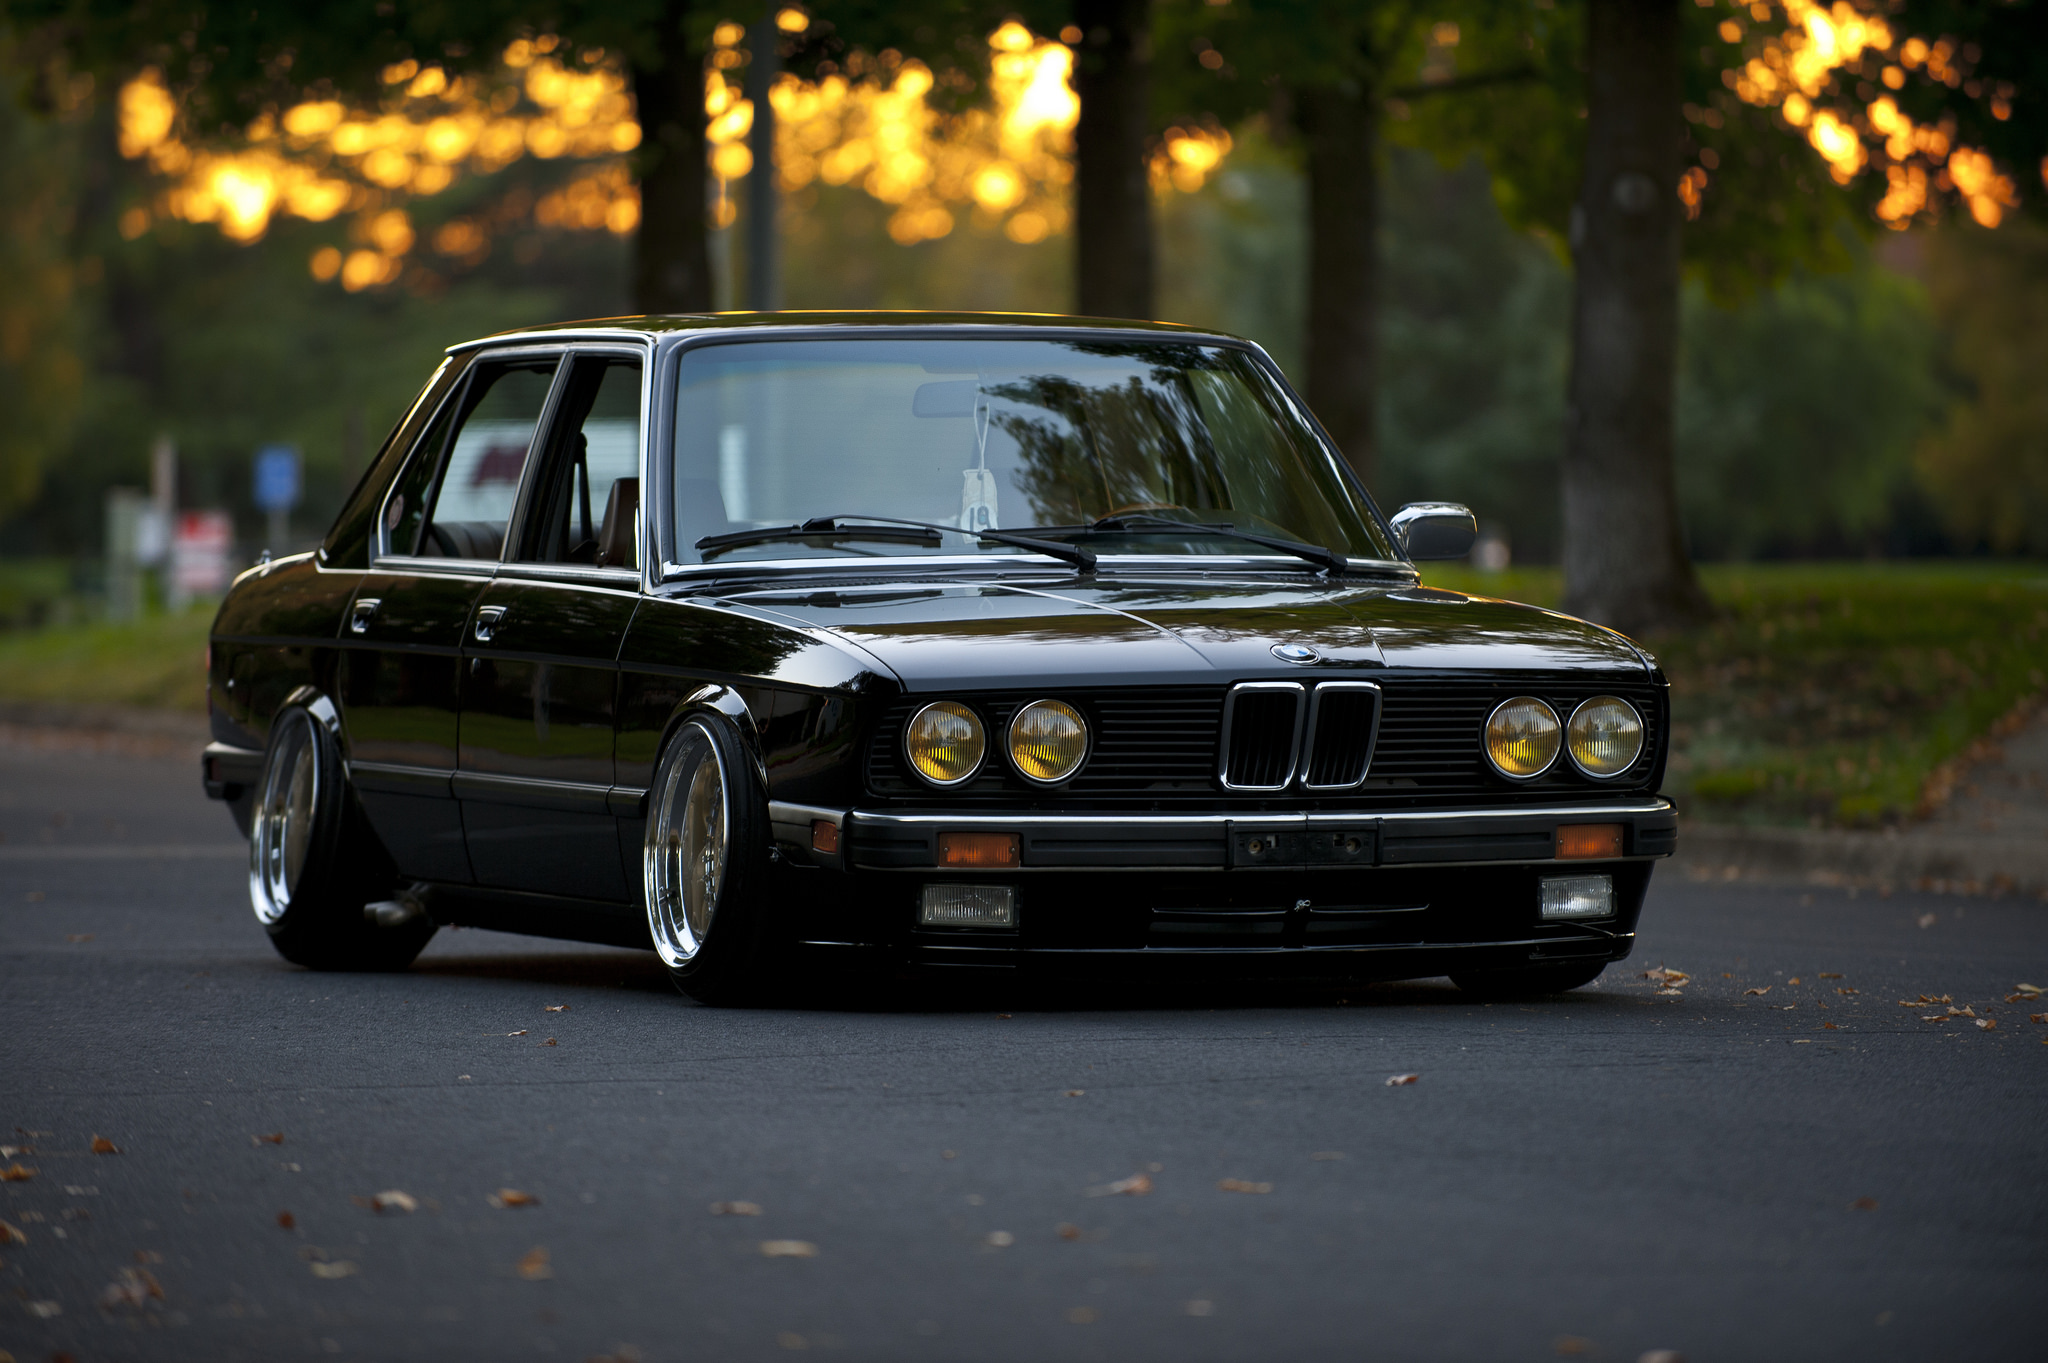 German Car Wallpaper Beautiful Bmw E28 Stancenation Form Gt Function